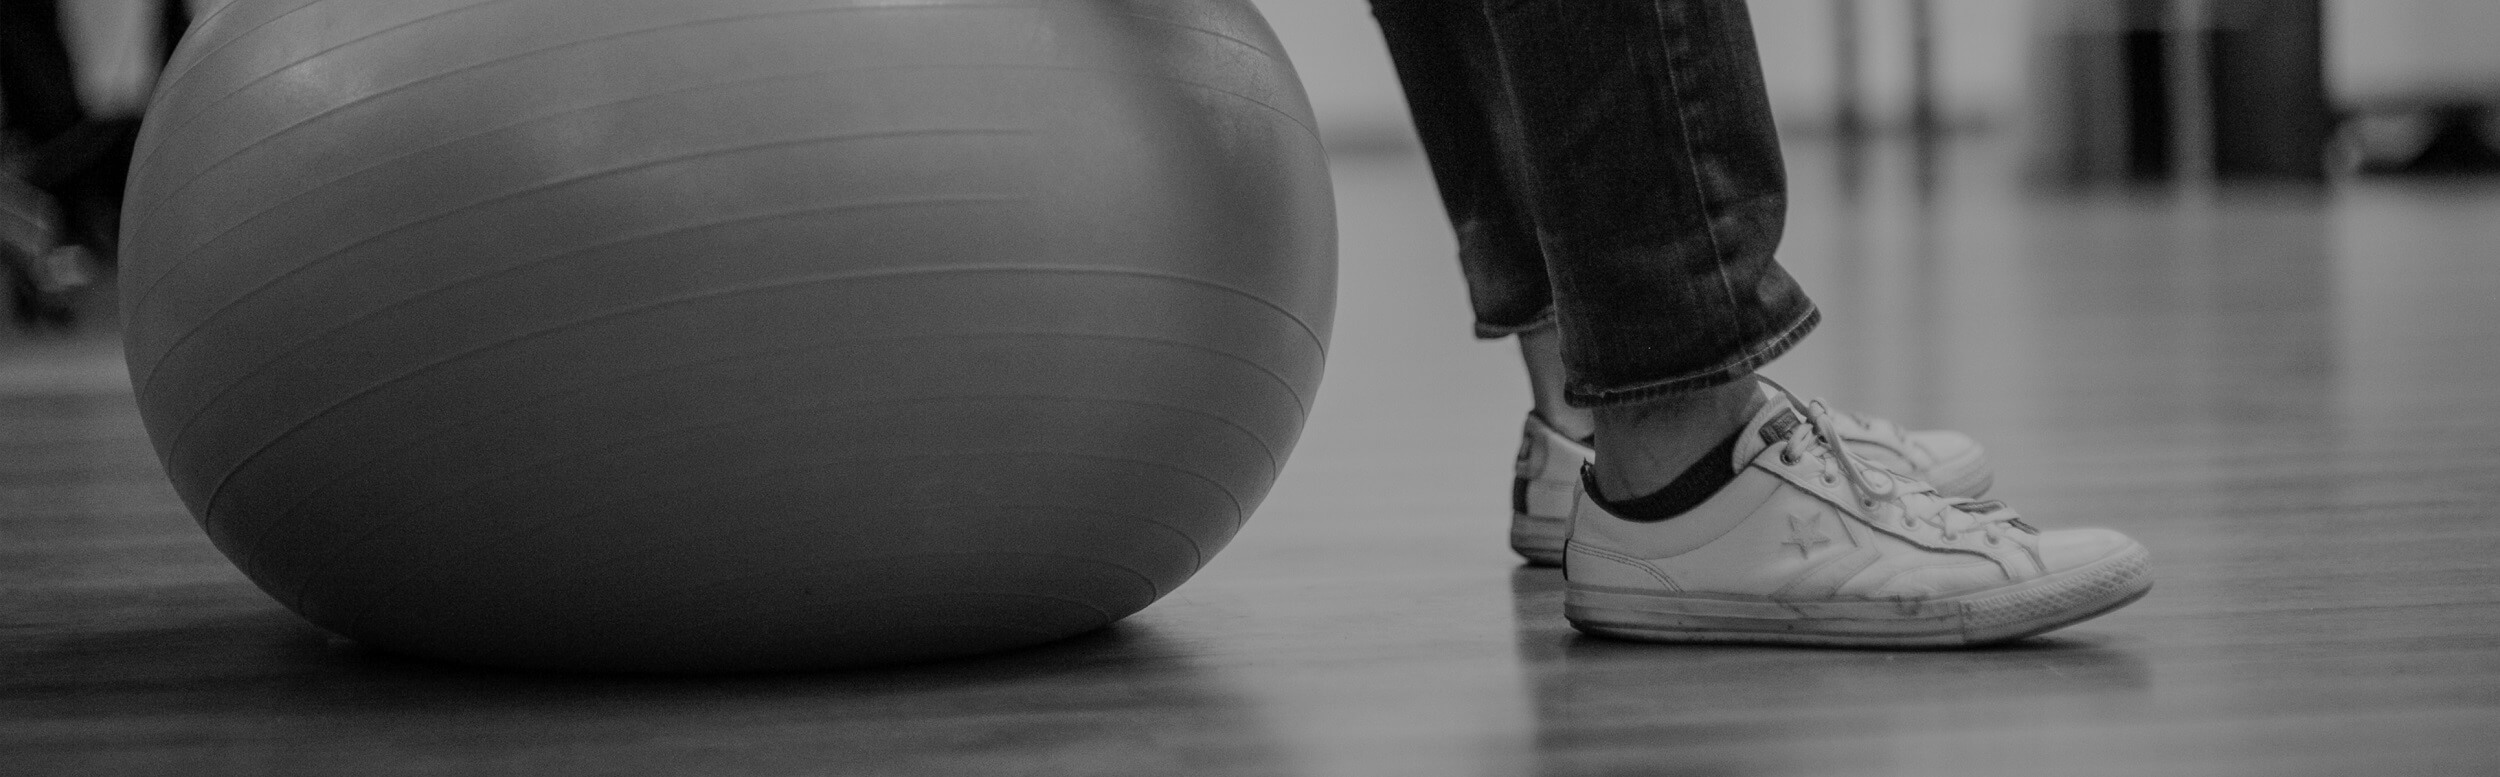 Man sitting on the exercise fitball